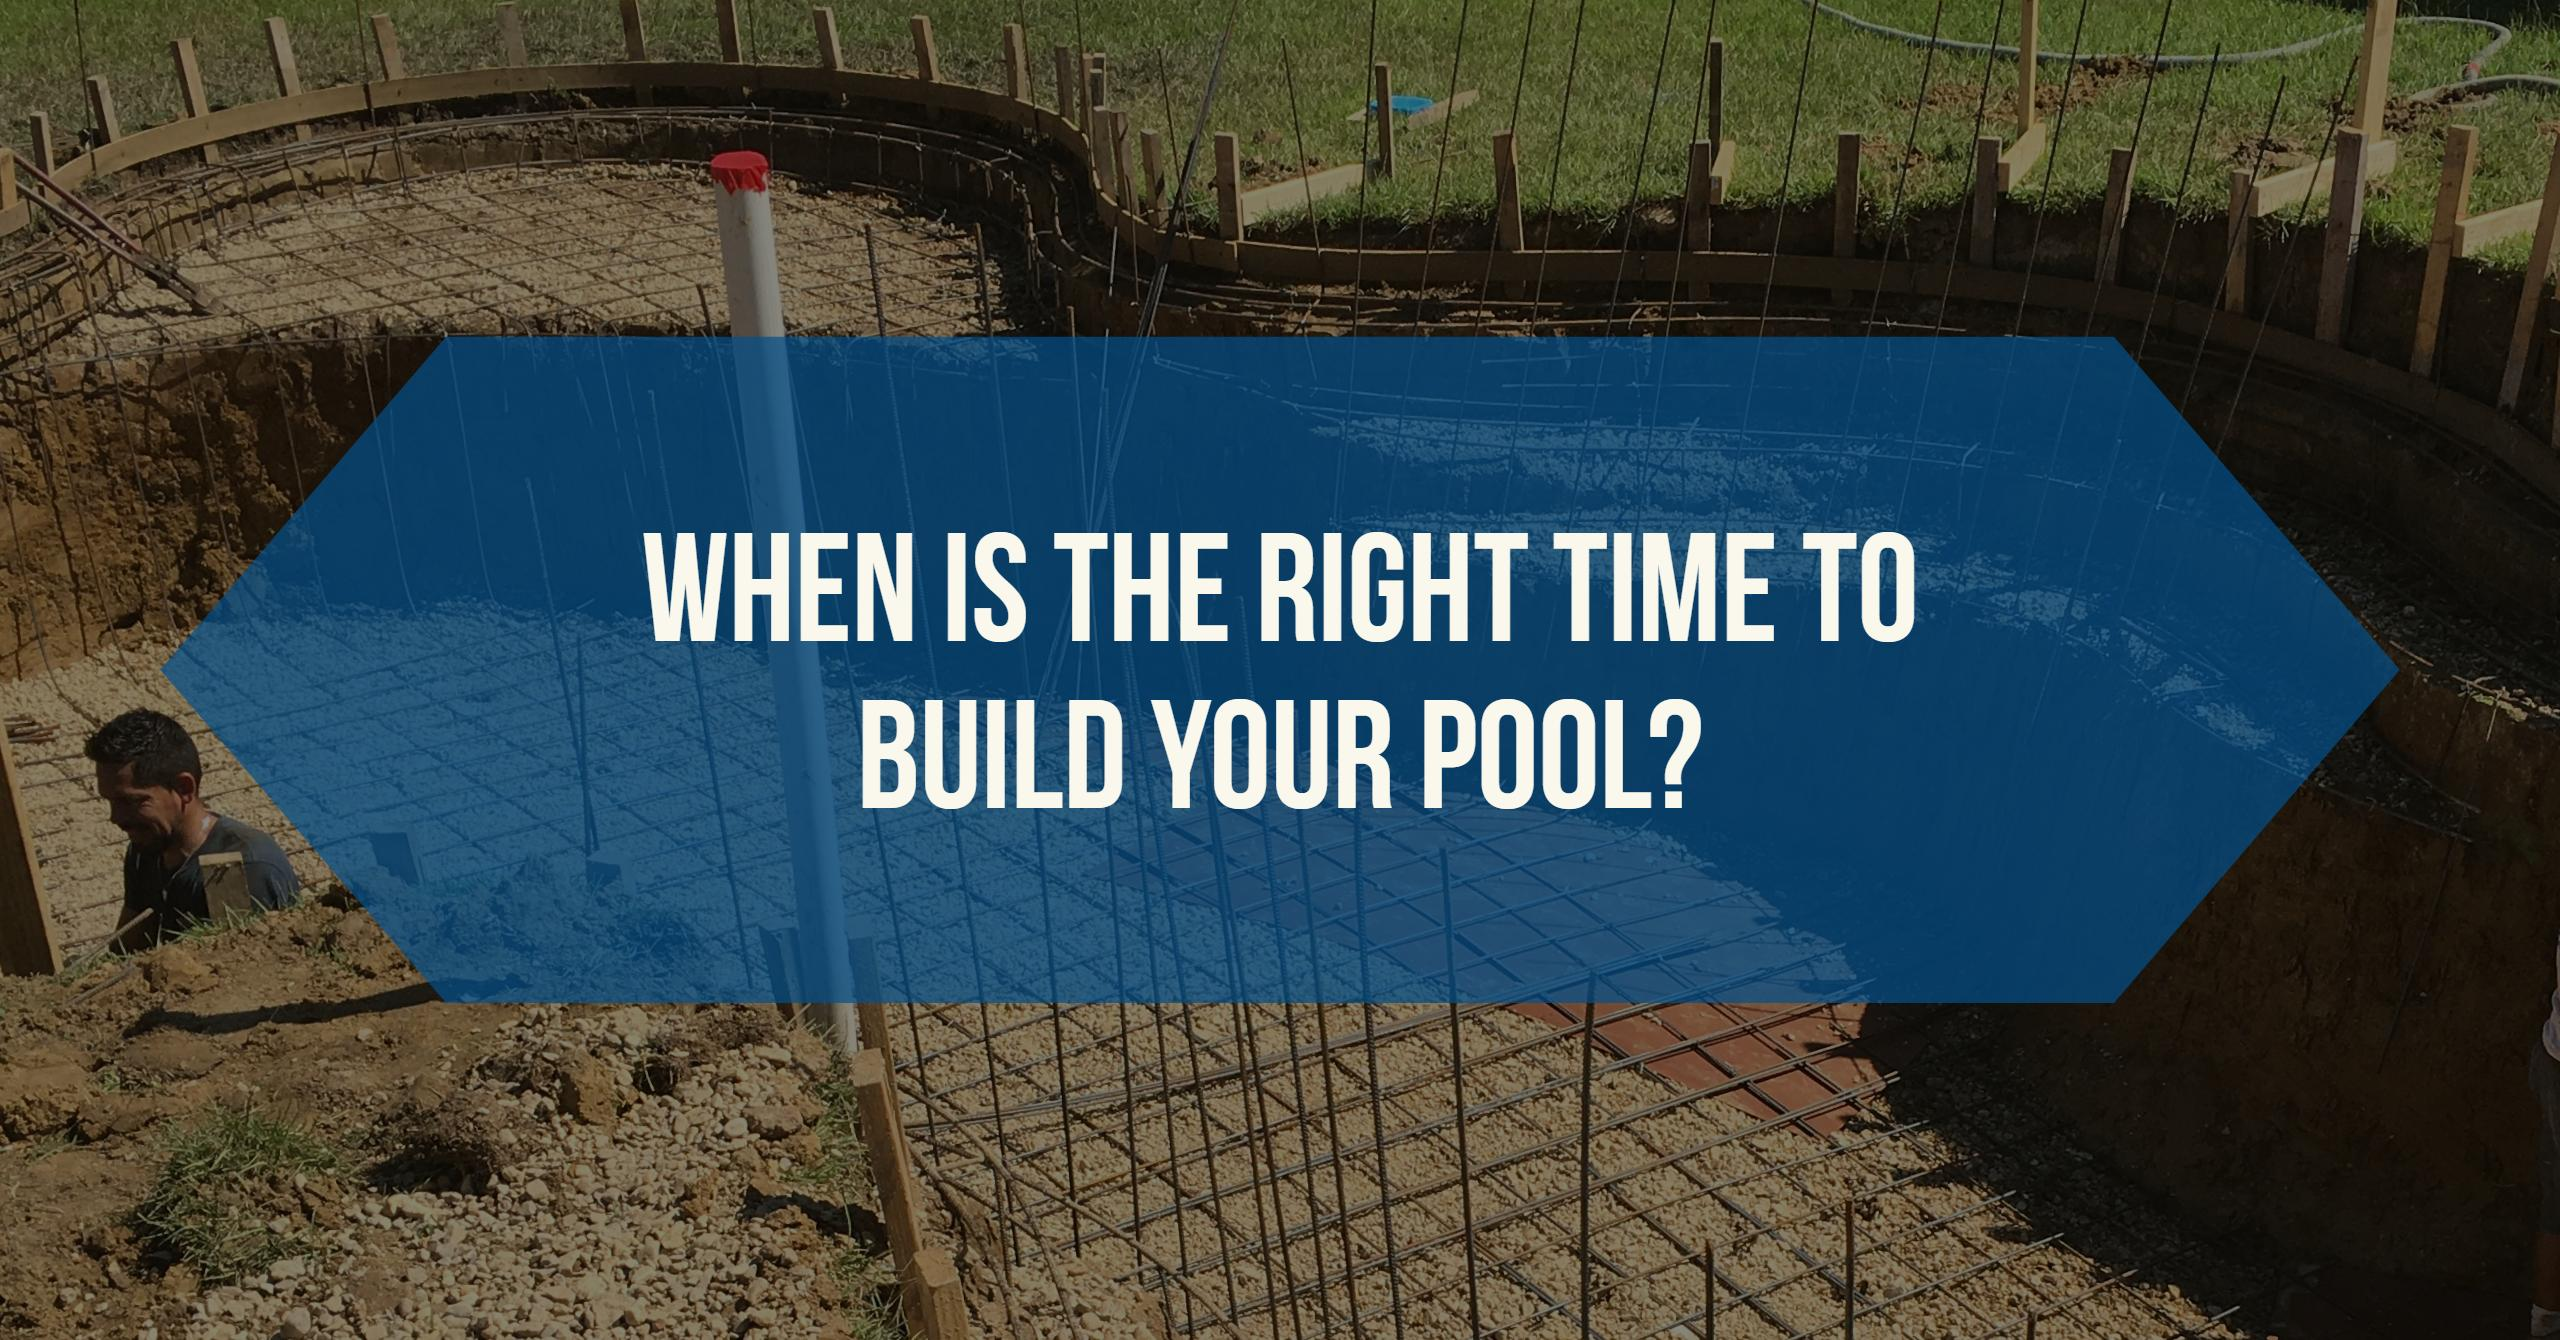 When_is_the_right_time_to_build_your_pool.jpg